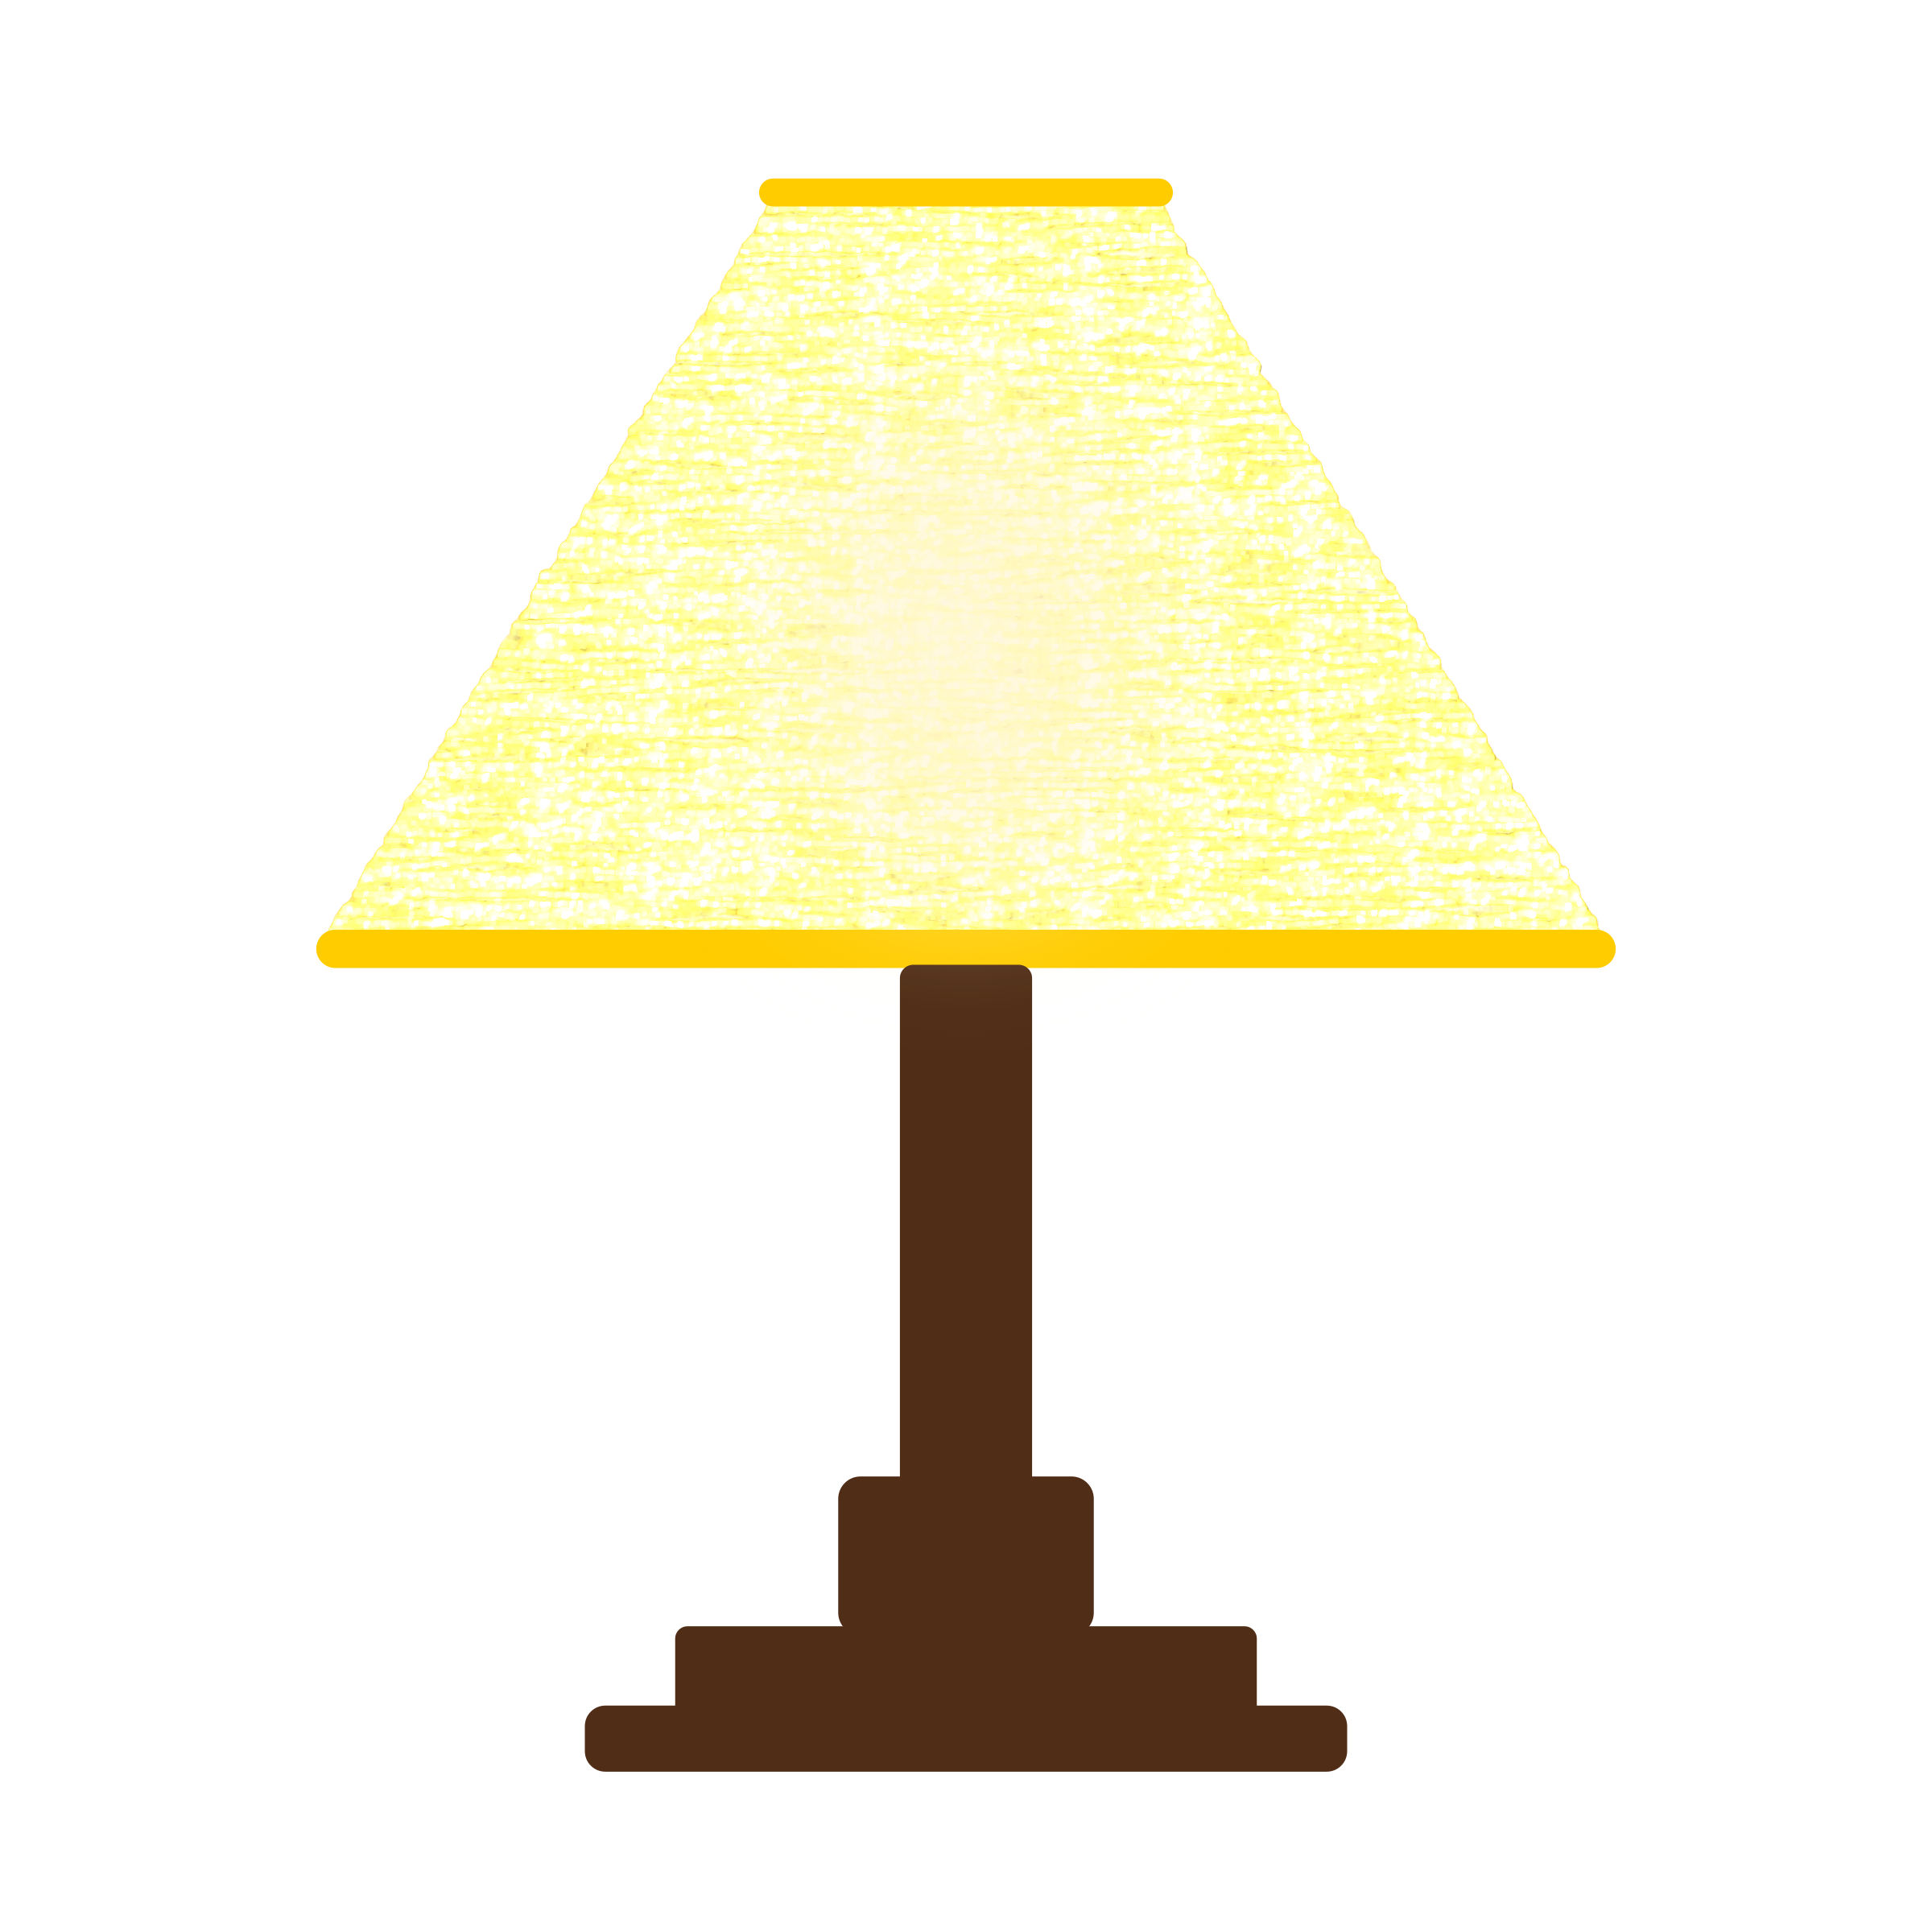 YELLOW LAMP SHADE-simple-three-color by oldifluff